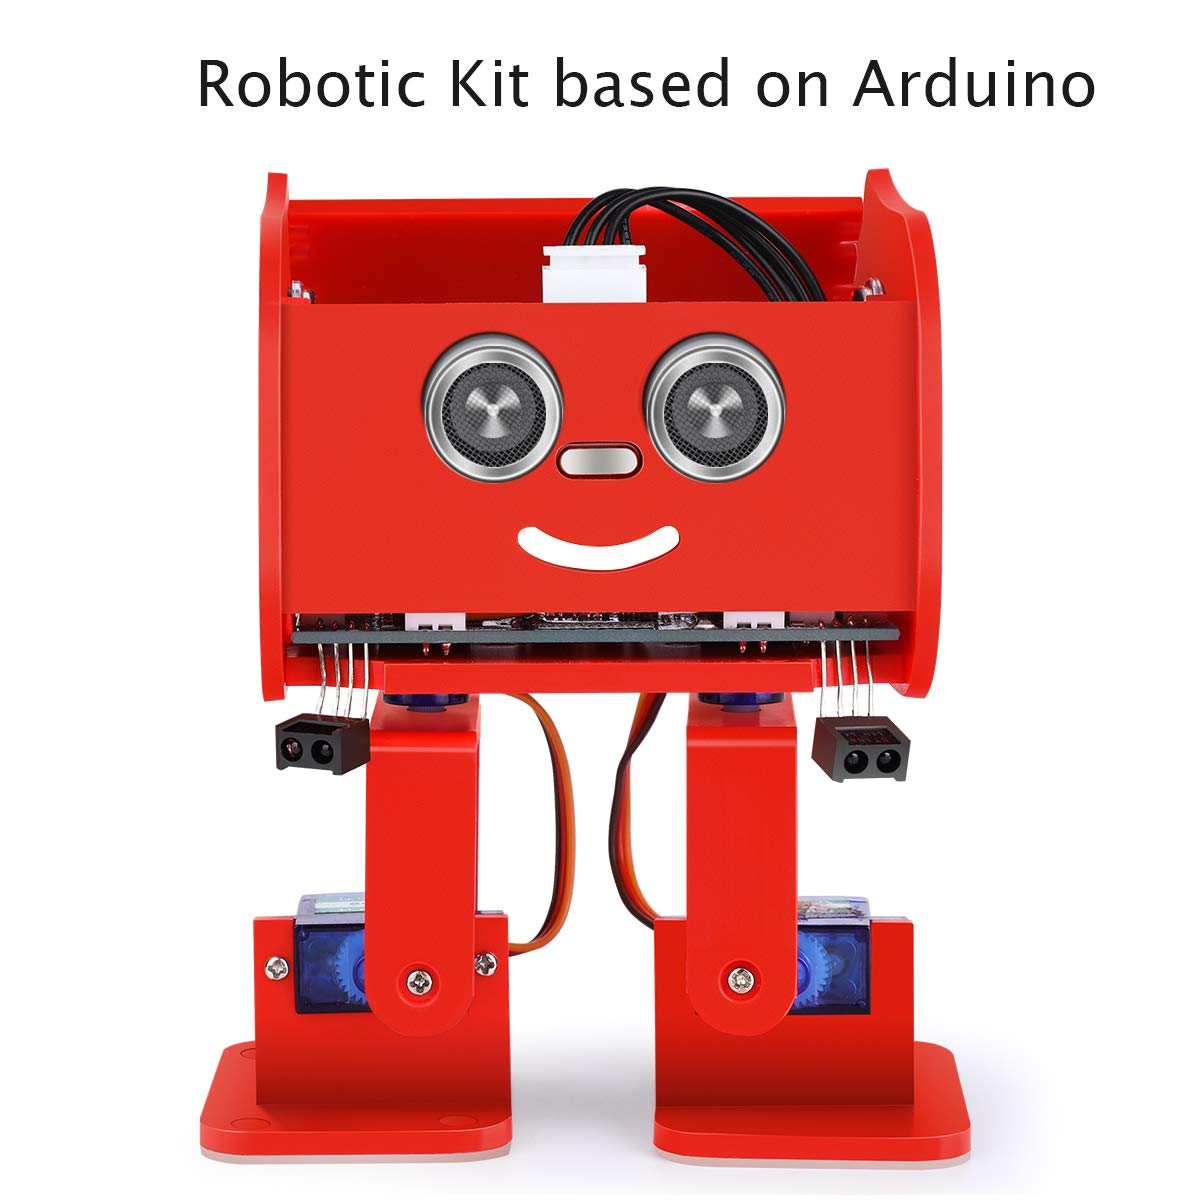 ELEGOO Penguin Bot Biped Robot Kit for Arduino Project with Assembling Tutorial,STEM Kit for Hobbyists, STEM Toys for Kids and Adults, Red Version by ELEGOO (Image #2)